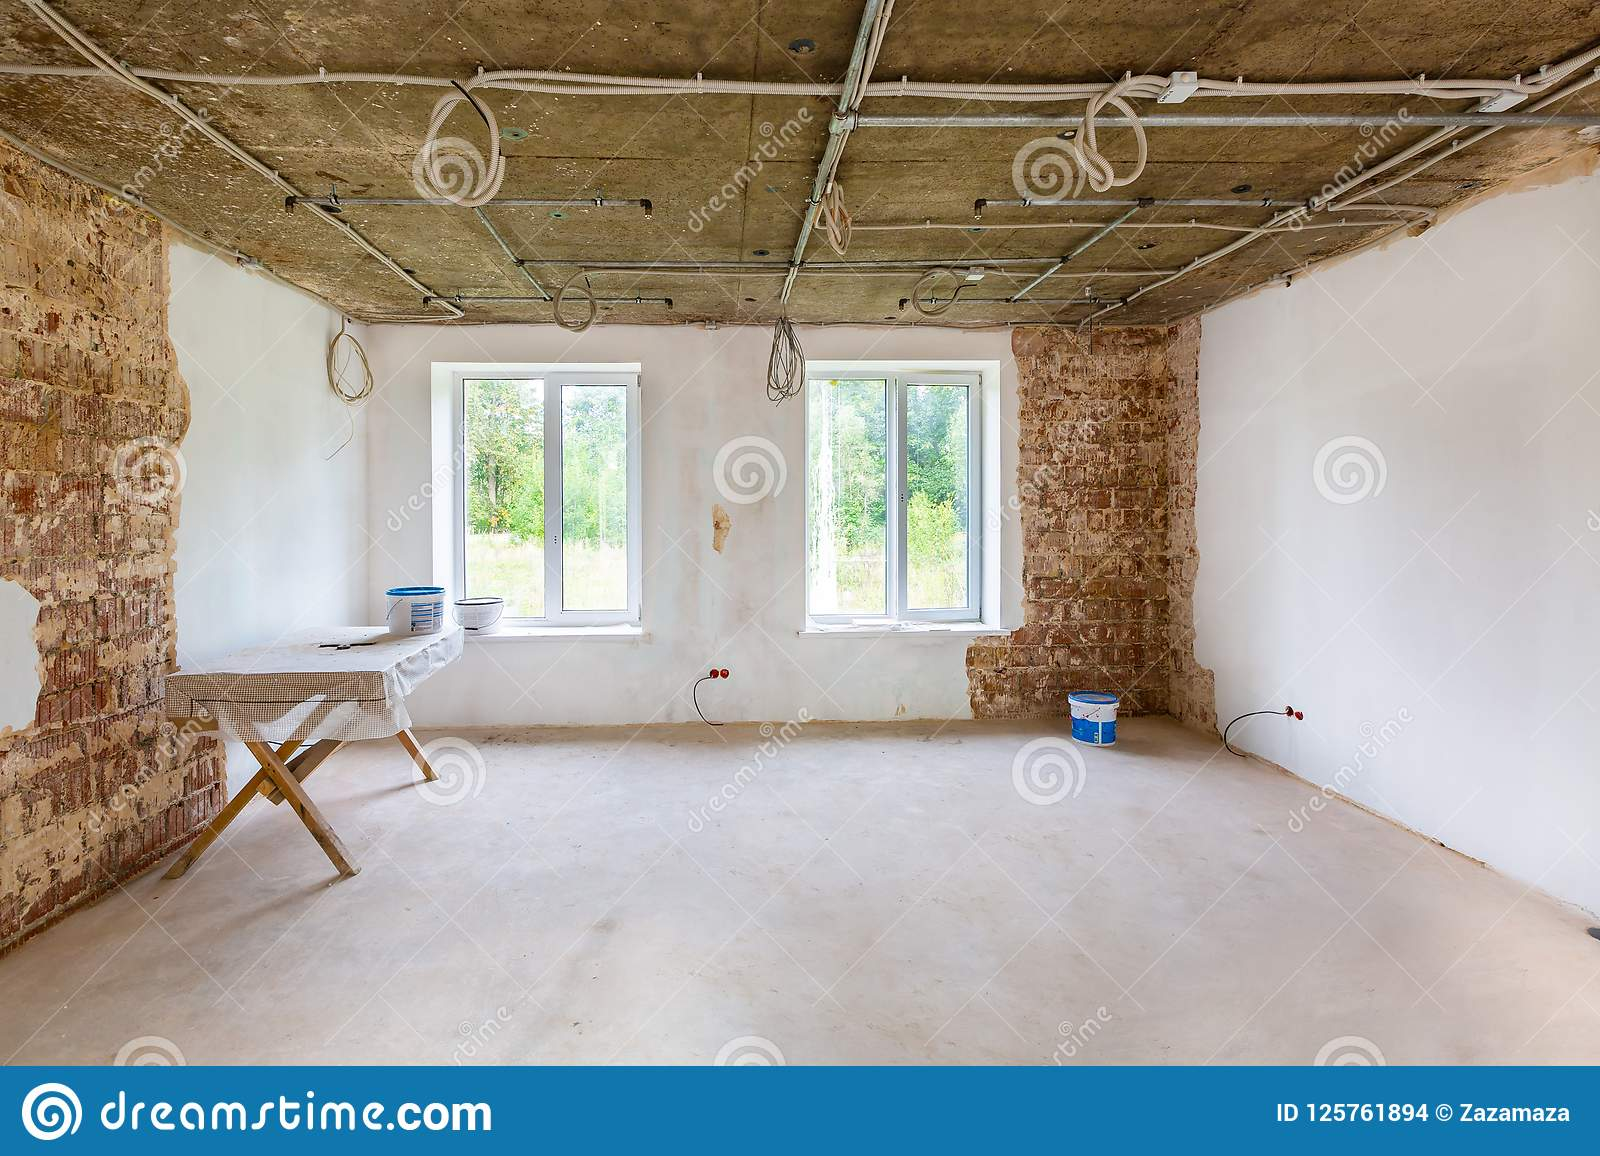 Working Process Of Installing Metal Frames For Plasterboard -drywall ...